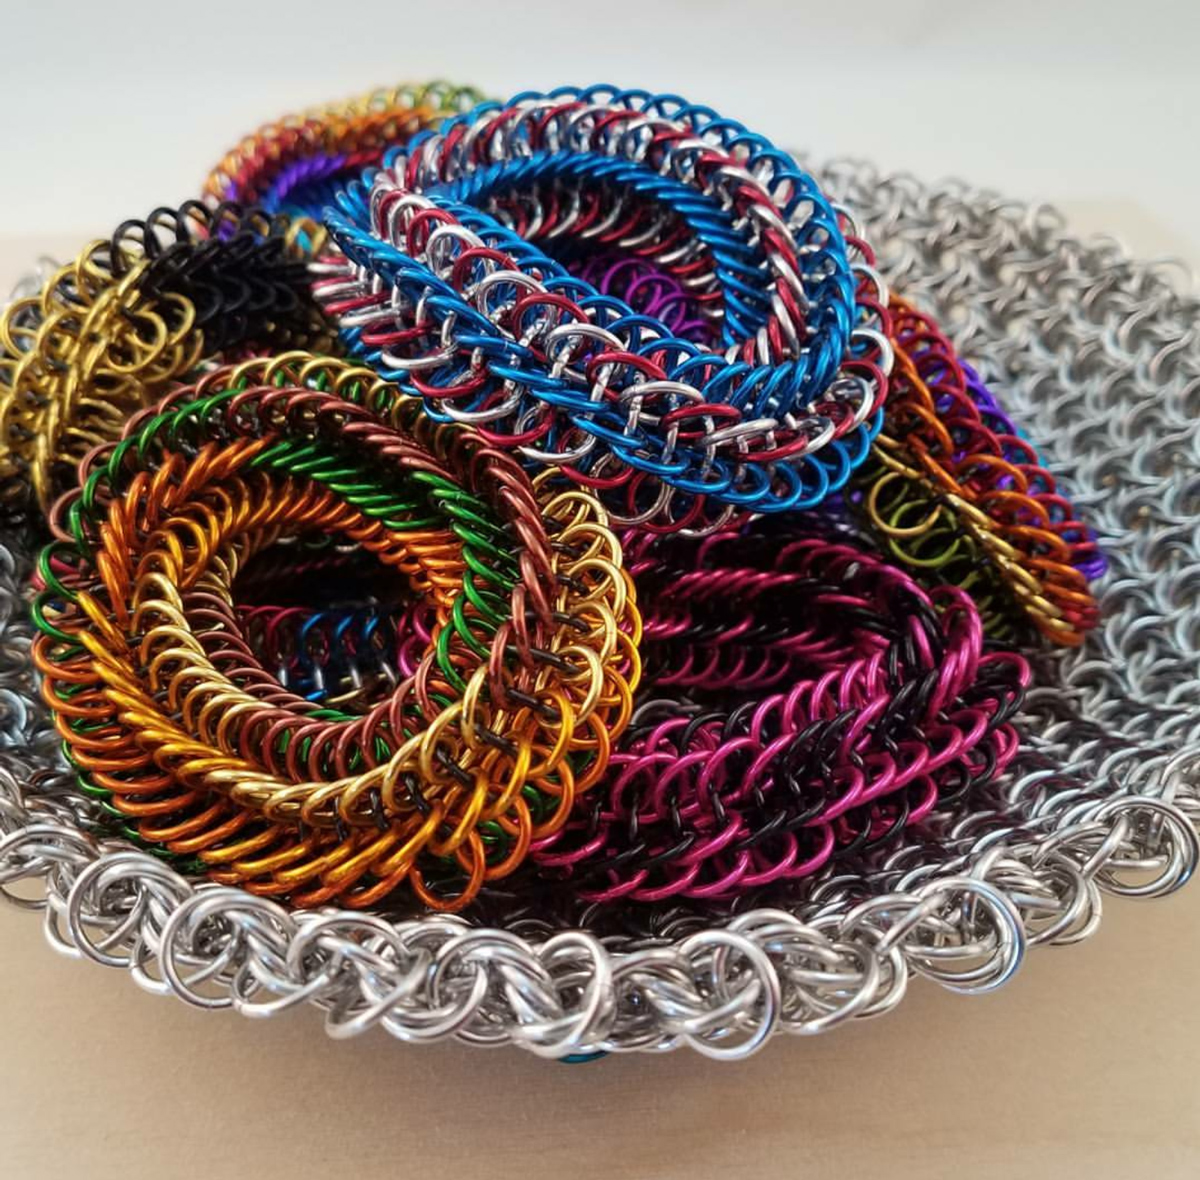 colorful Infinity Rose Fidget toy and bracelets in chainmaille moorish rose basket